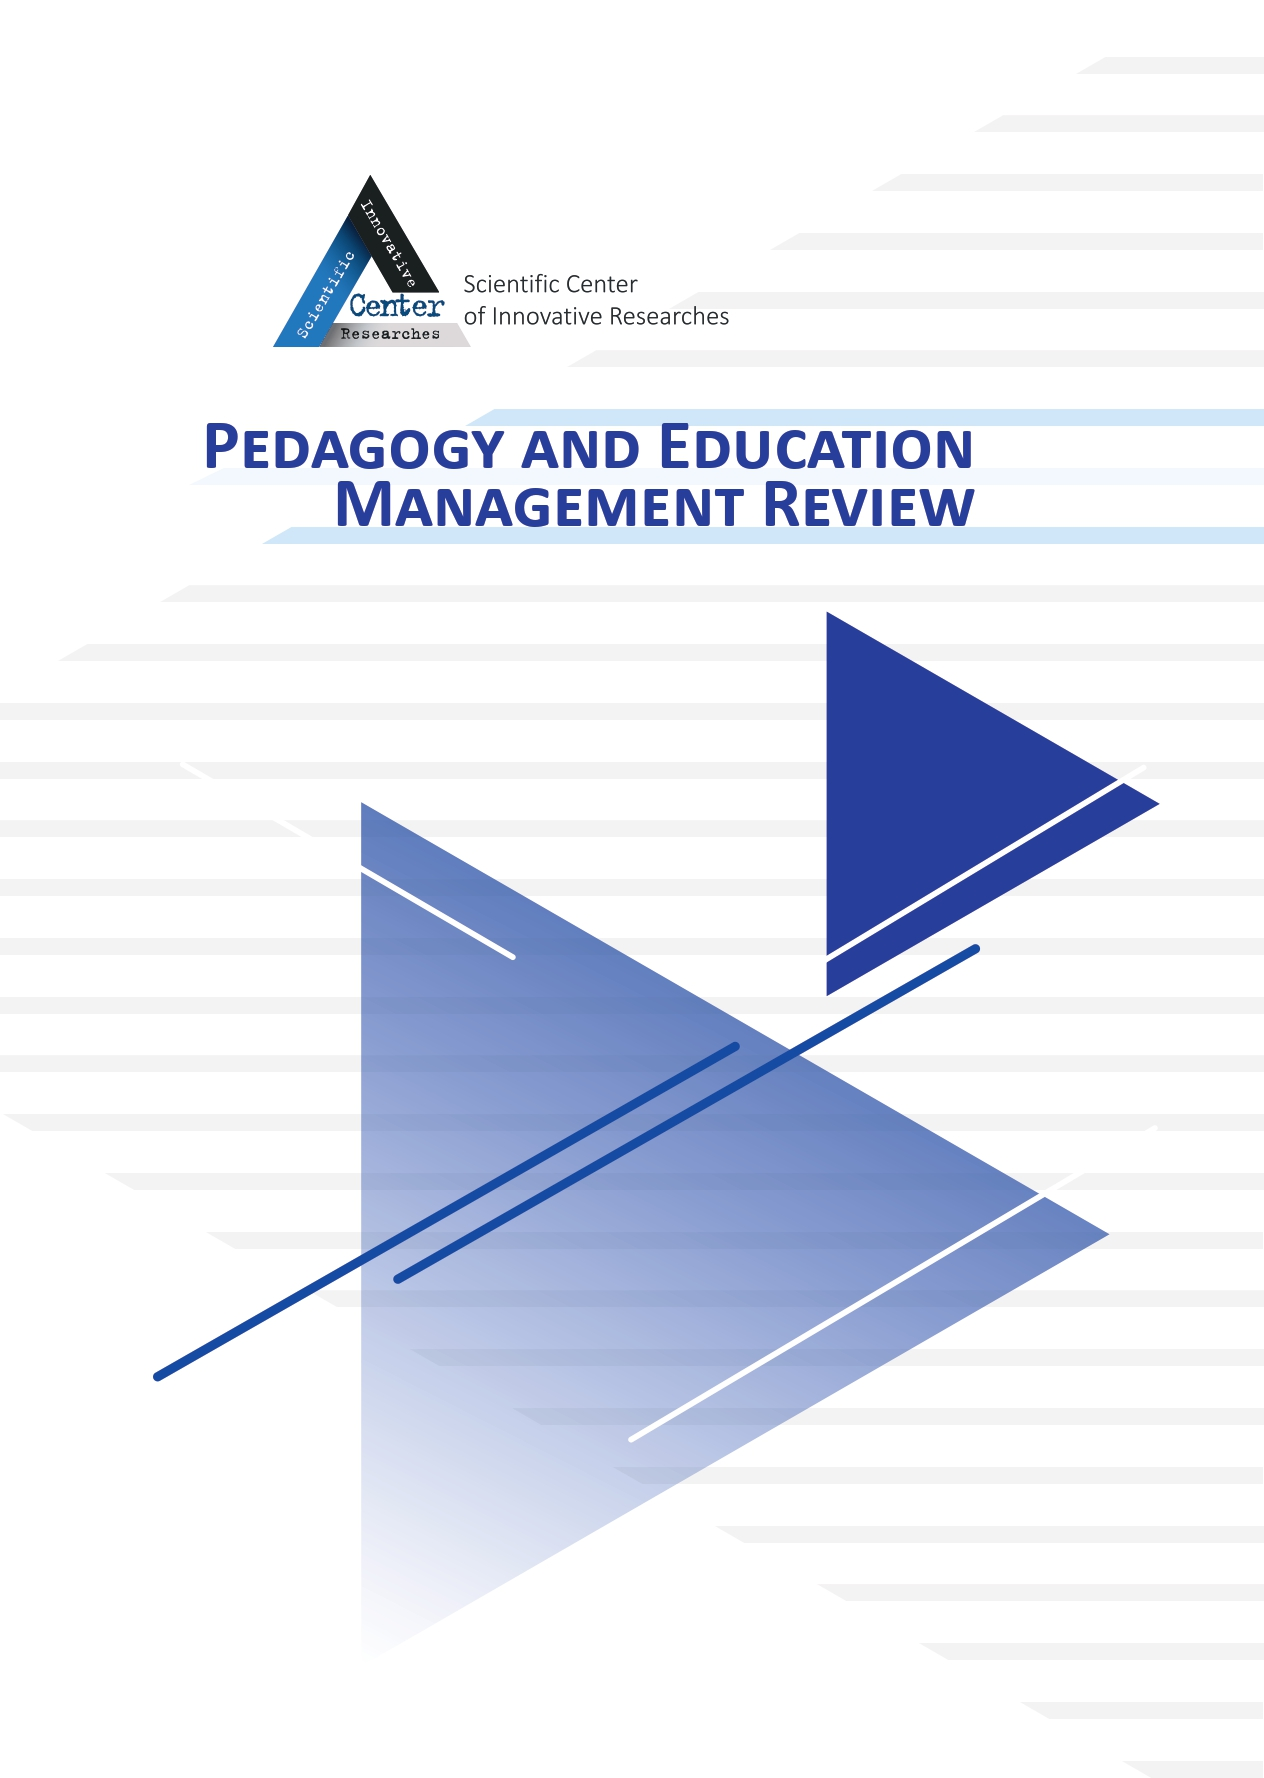 View No. 2 (2021): PEDAGOGY AND EDUCATION MANAGEMENT REVIEW